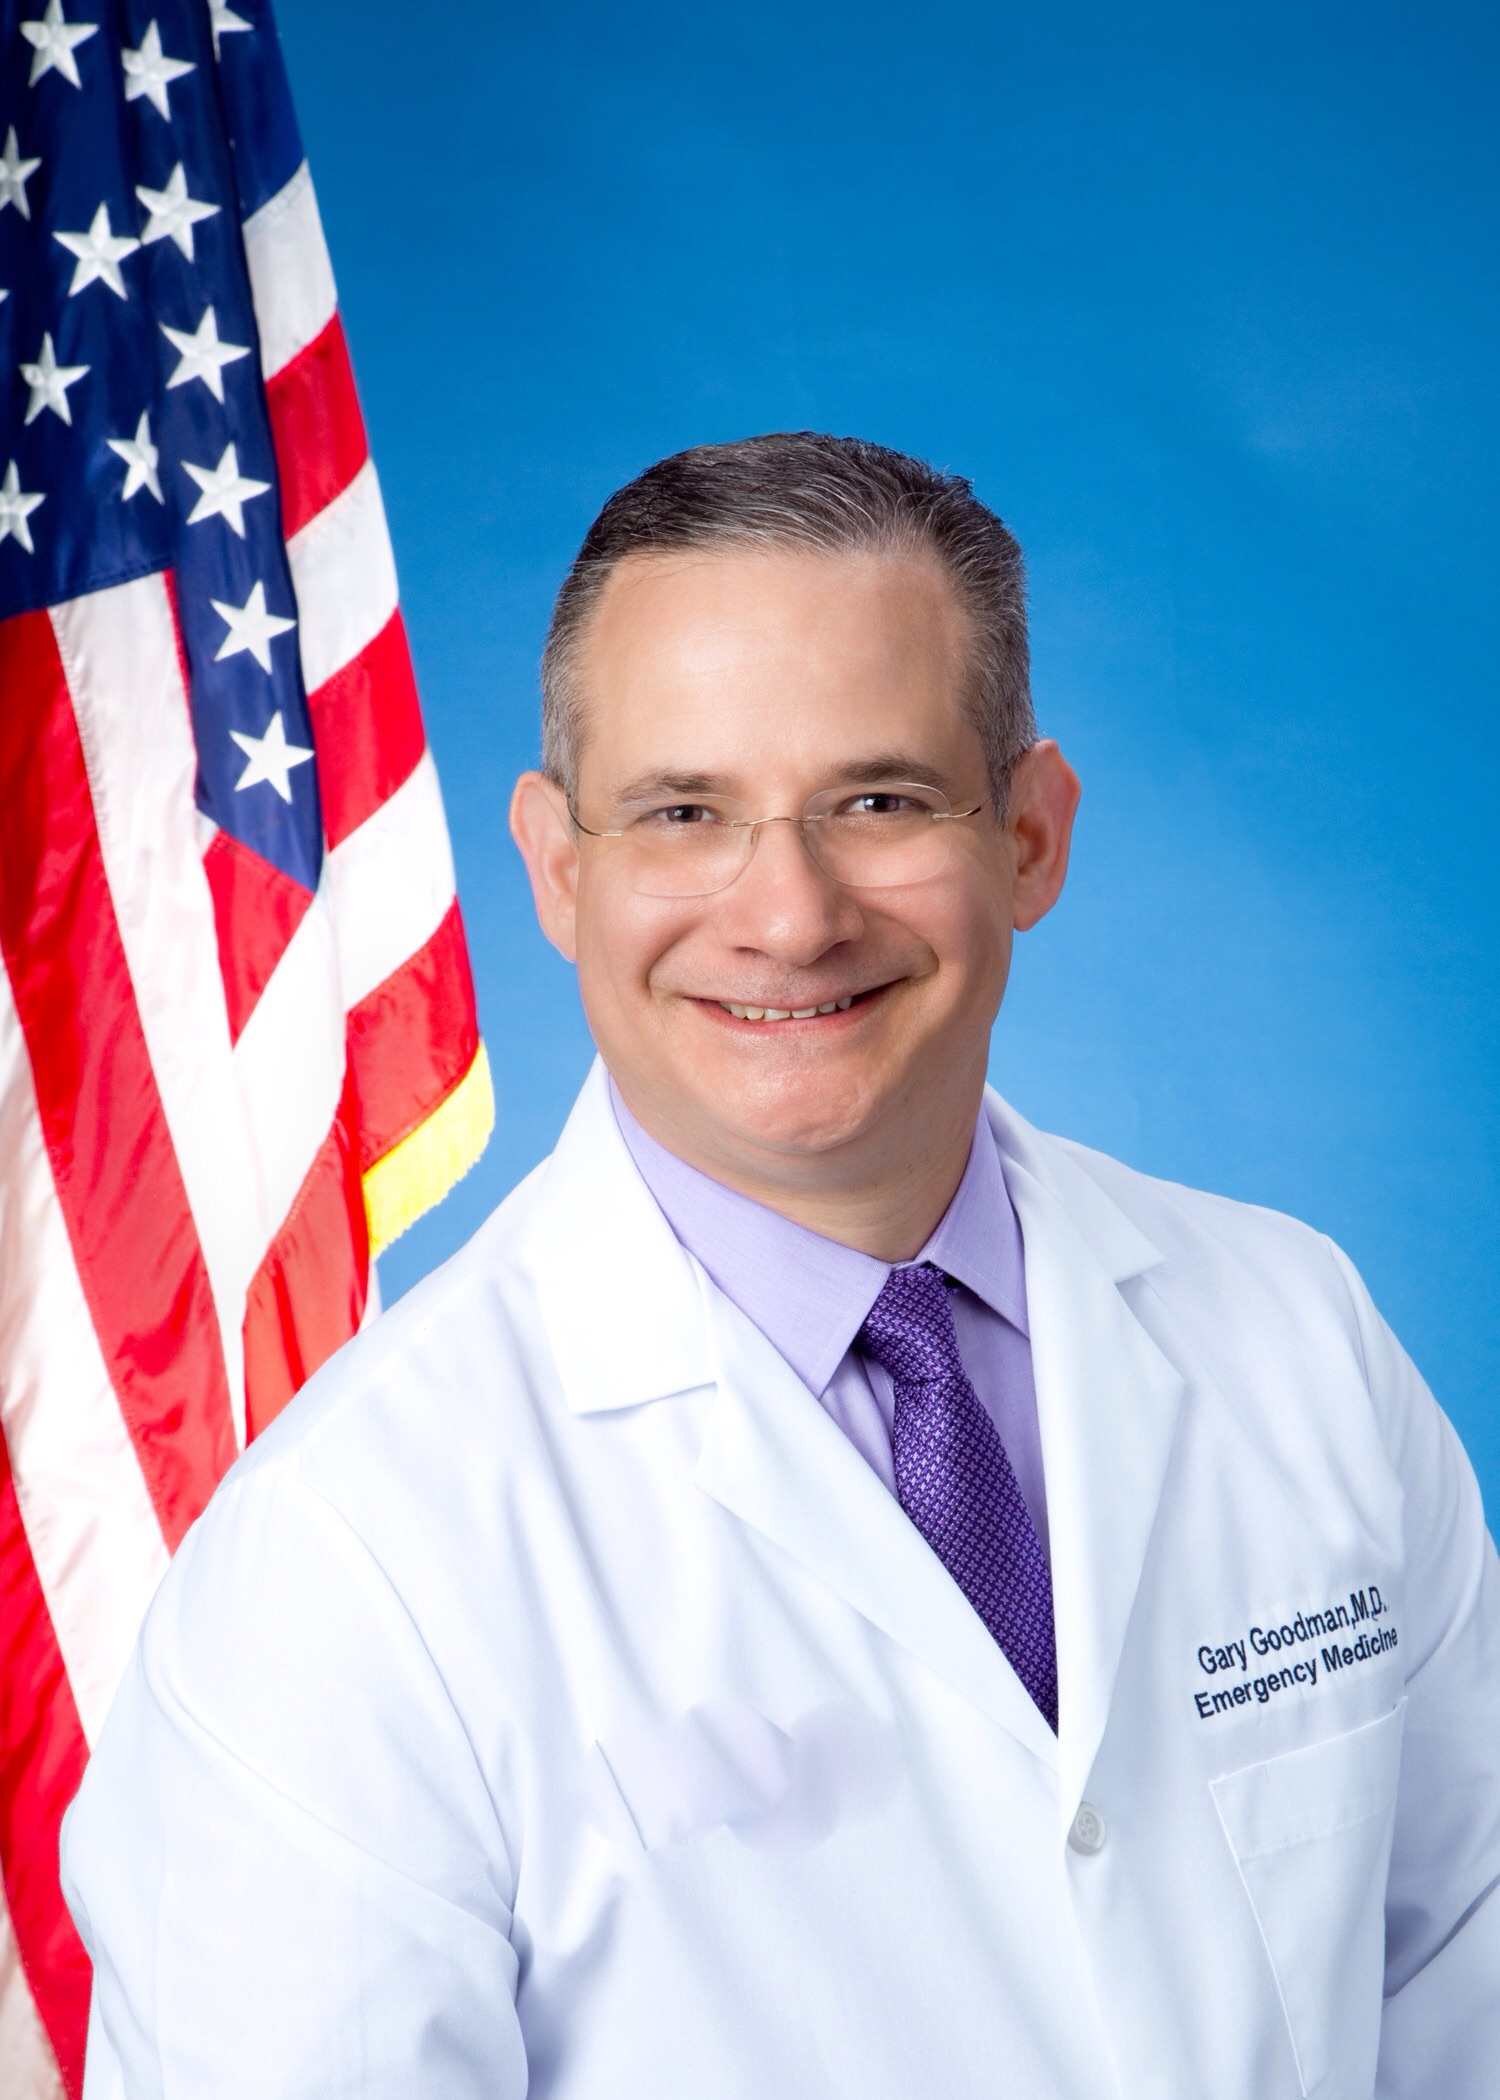 Dr. Gary Goodman, MD